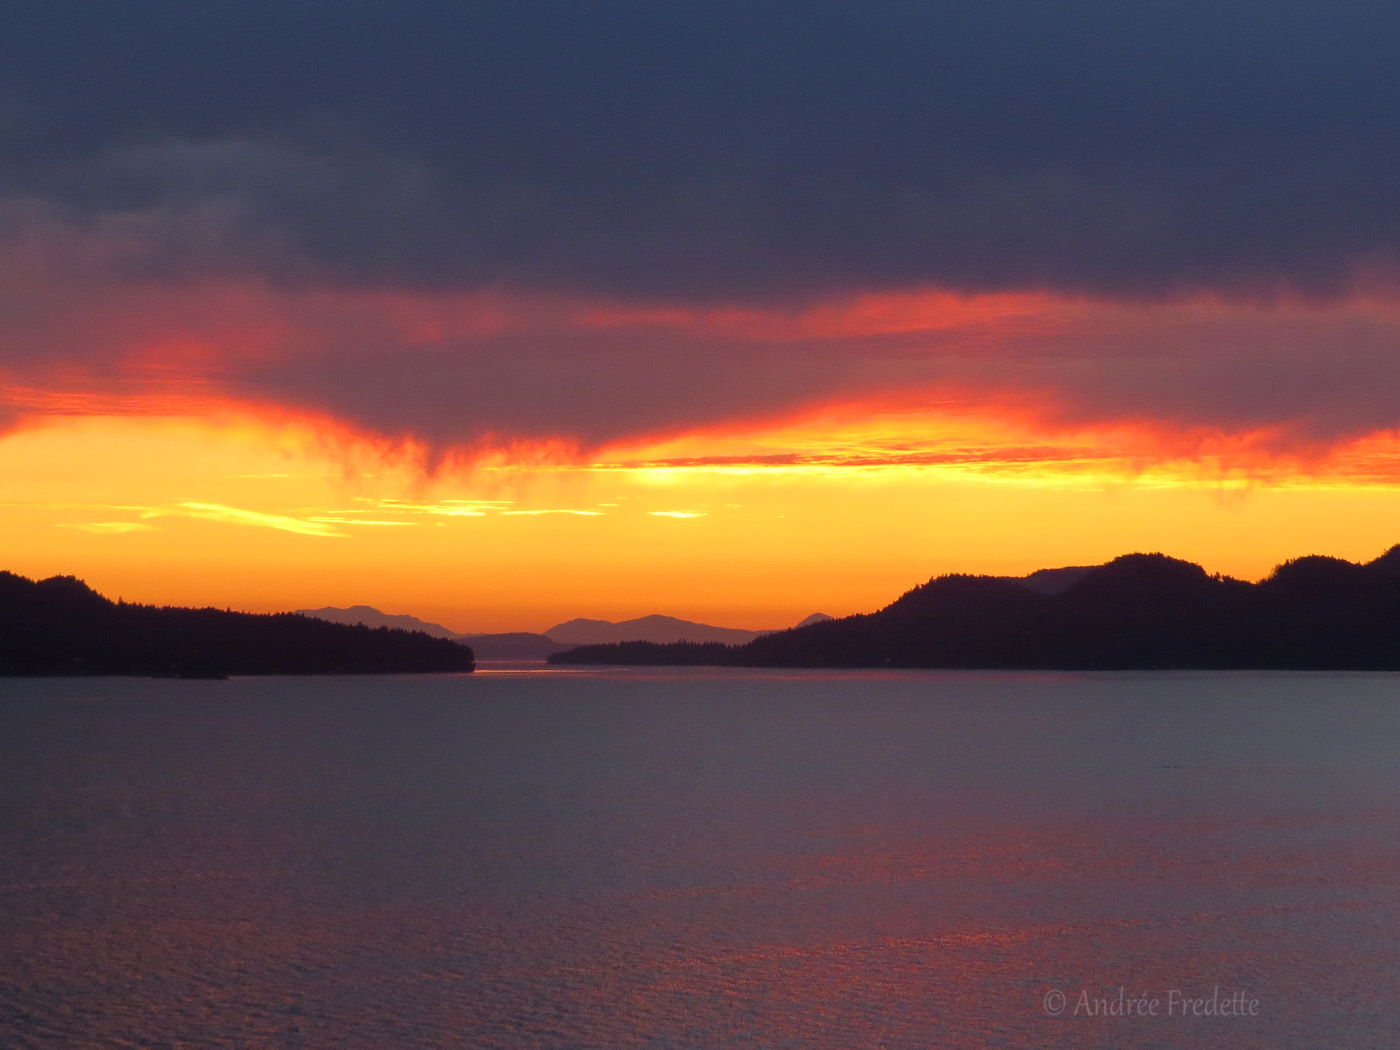 Sunset drama over Navy Channel, Southern Gulf Islands, BC. Photo by Andrée Fredette